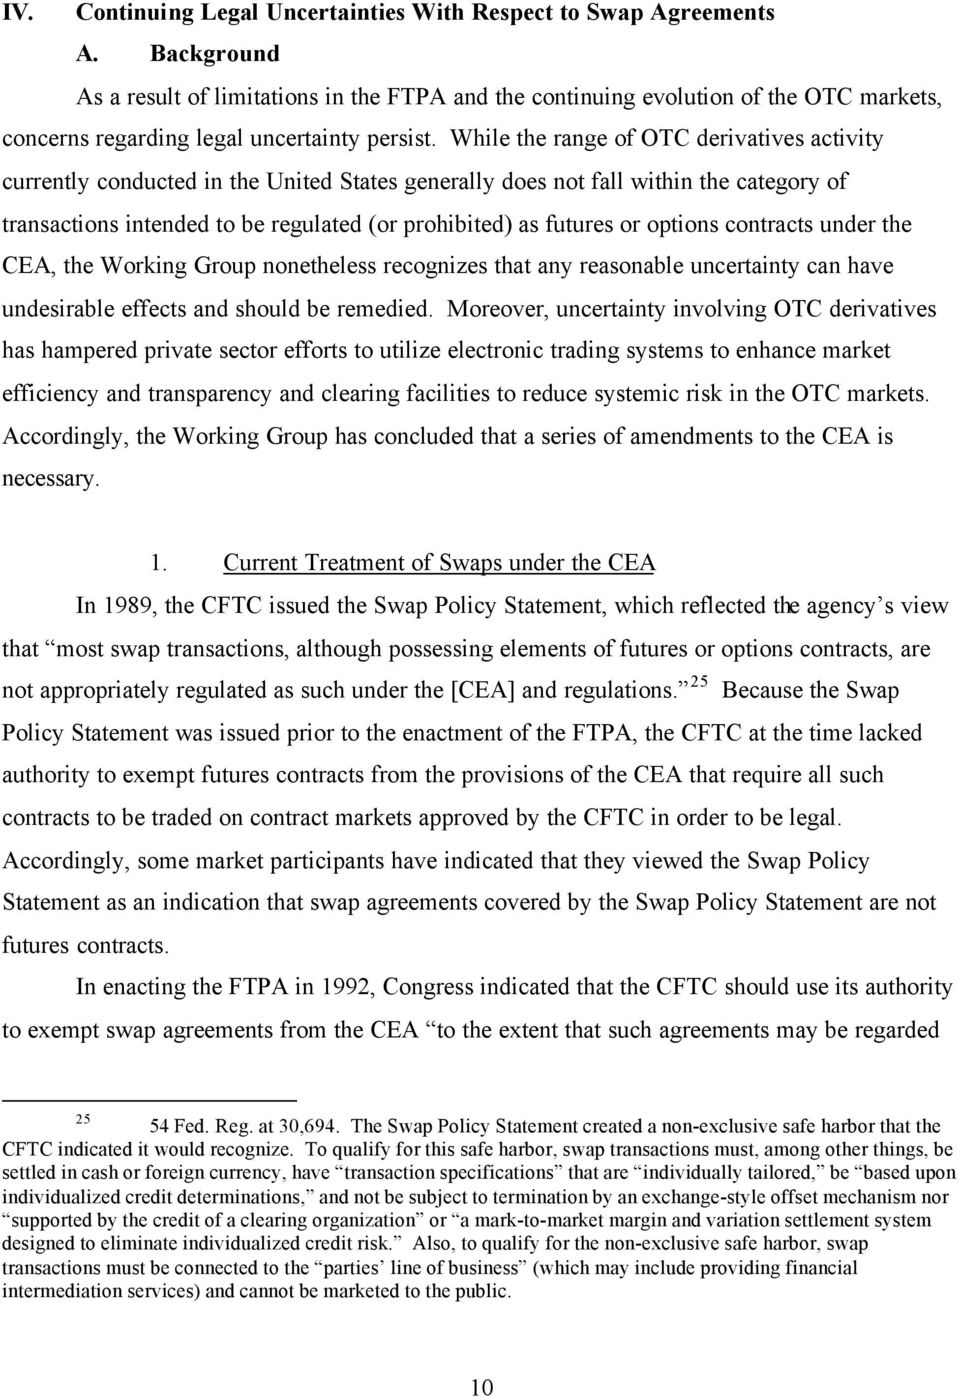 While the range of OTC derivatives activity currently conducted in the United States generally does not fall within the category of transactions intended to be regulated (or prohibited) as futures or